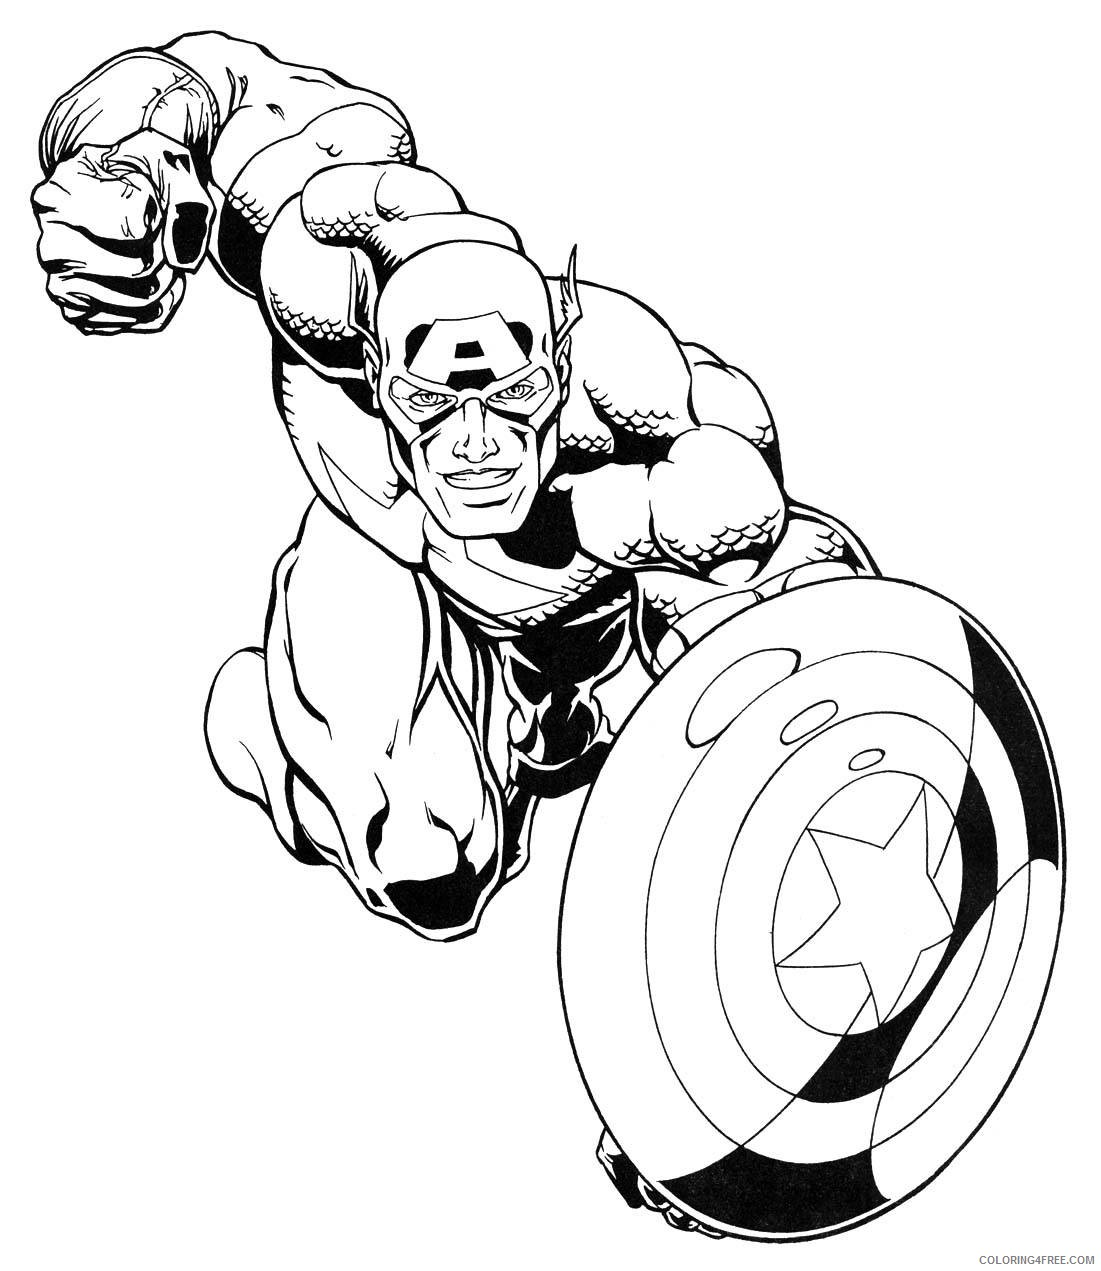 captain america superhero coloring pages Coloring4free